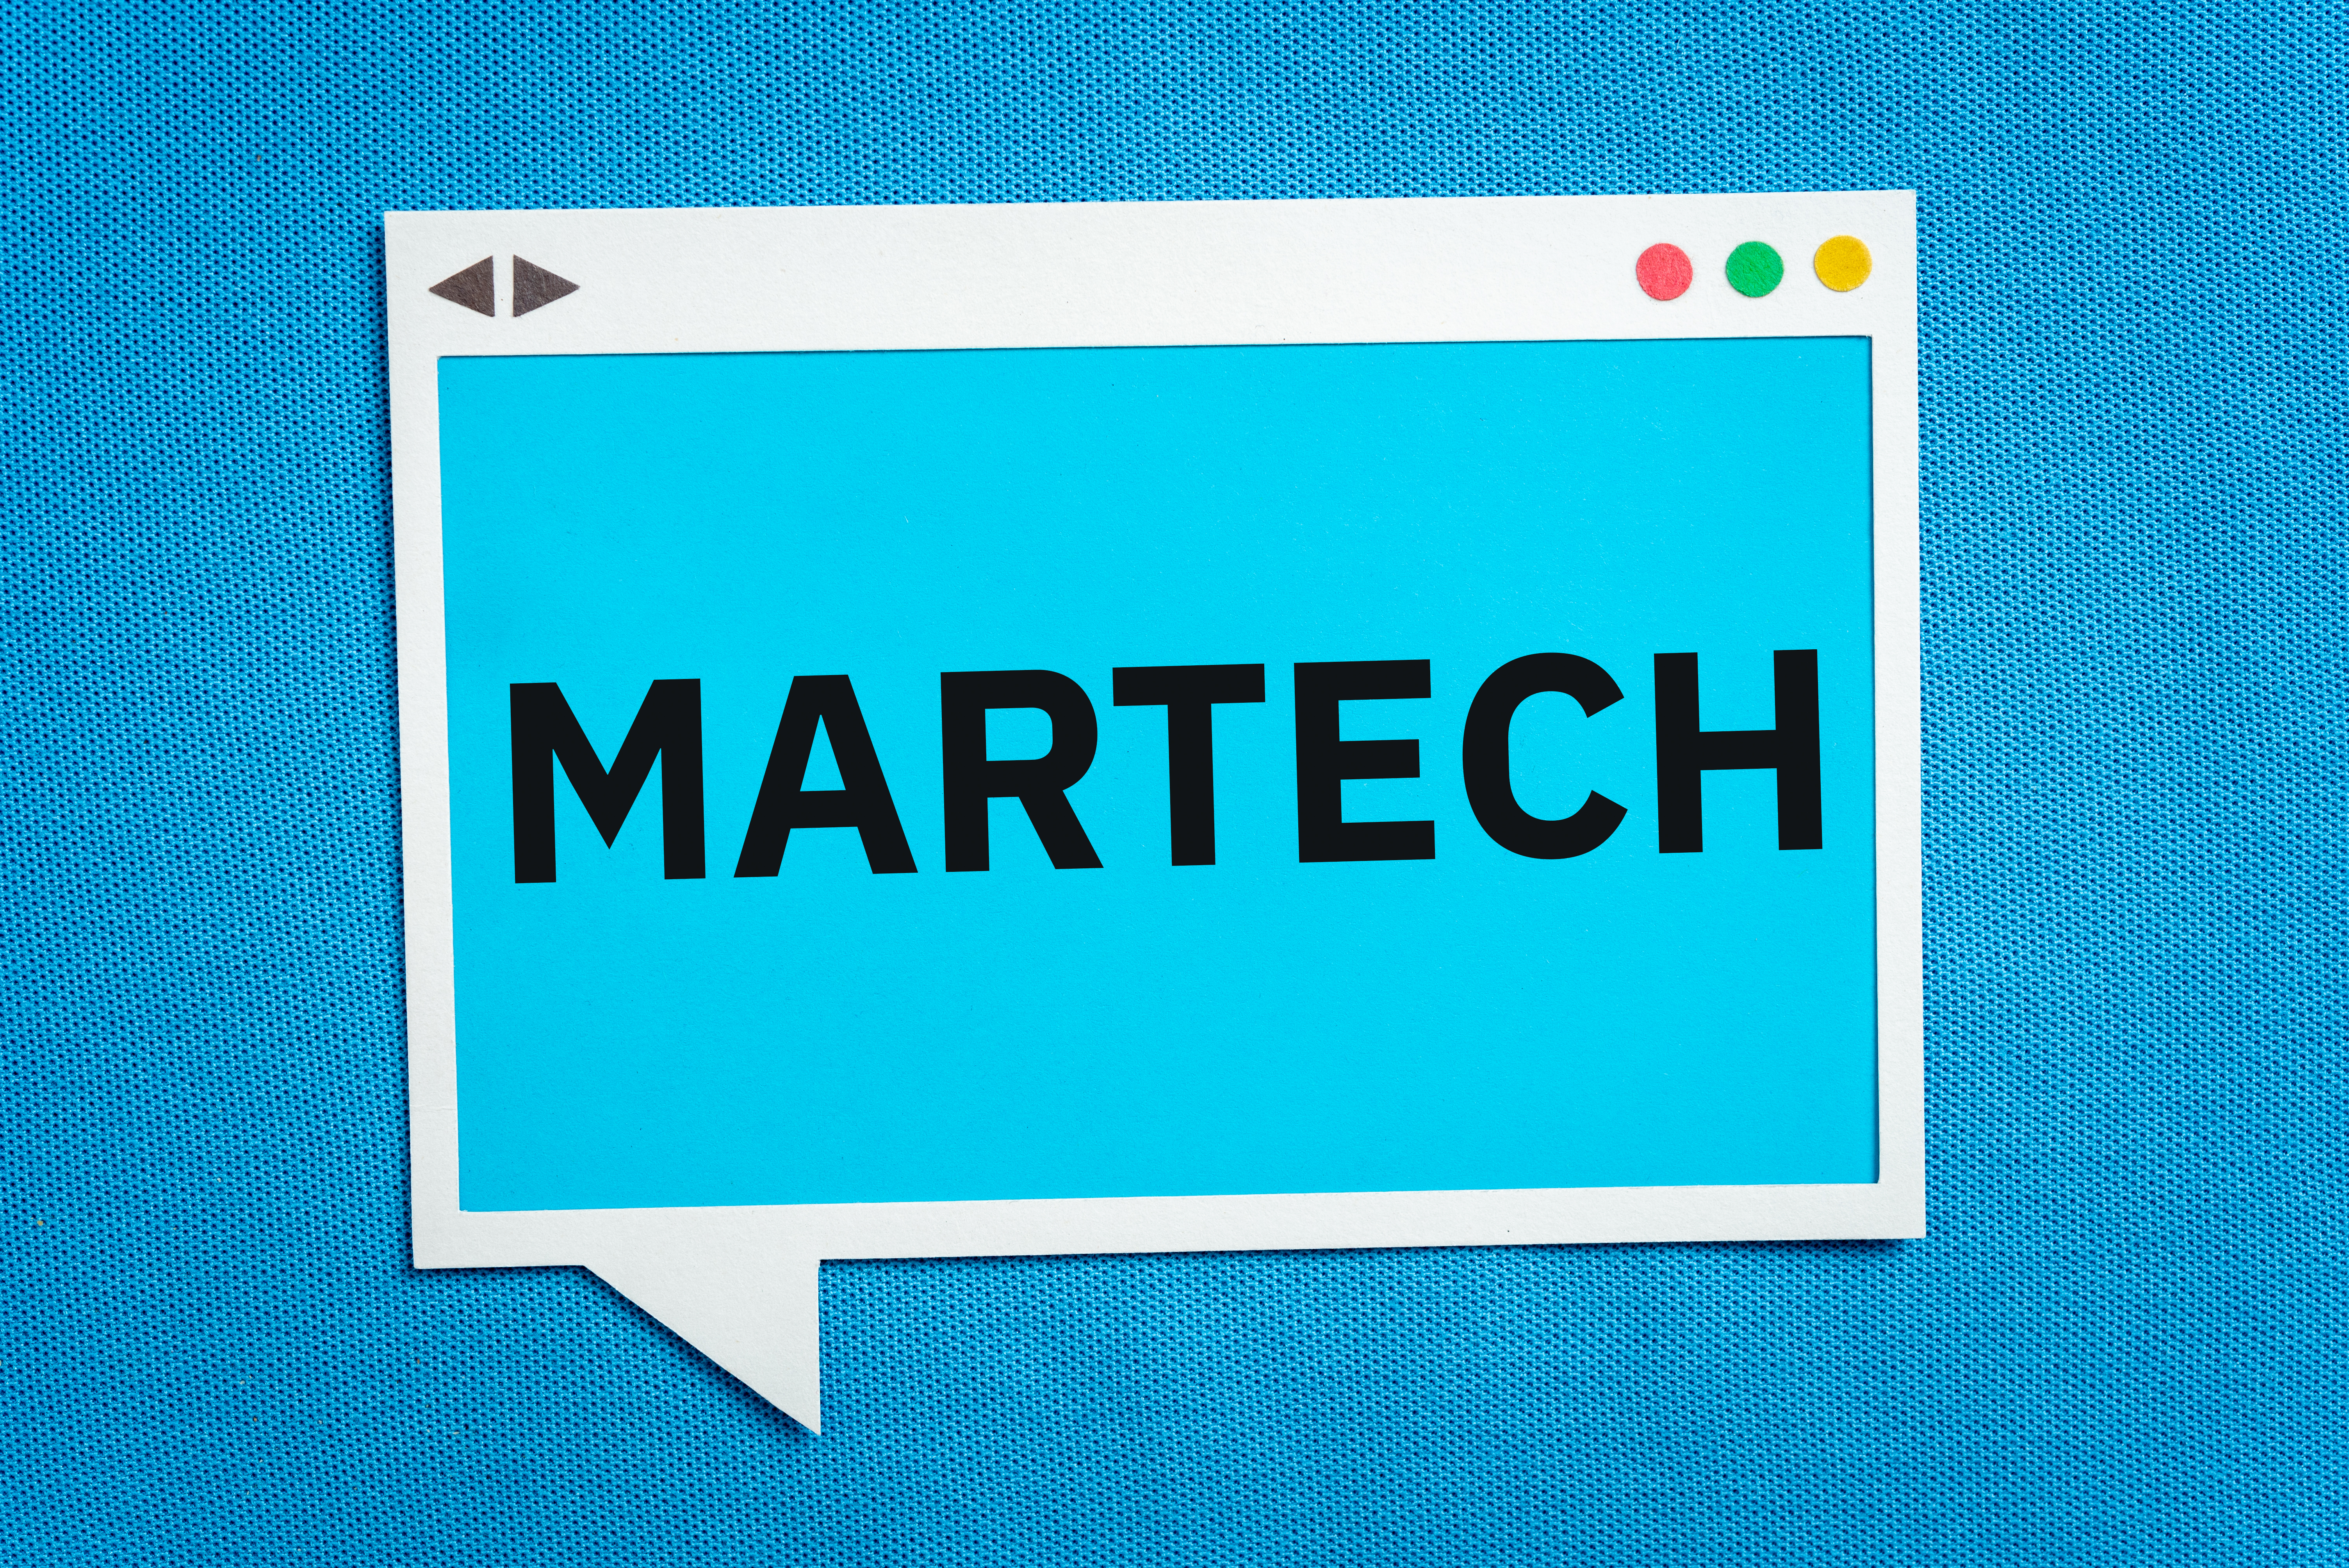 martech_in_text_bubble